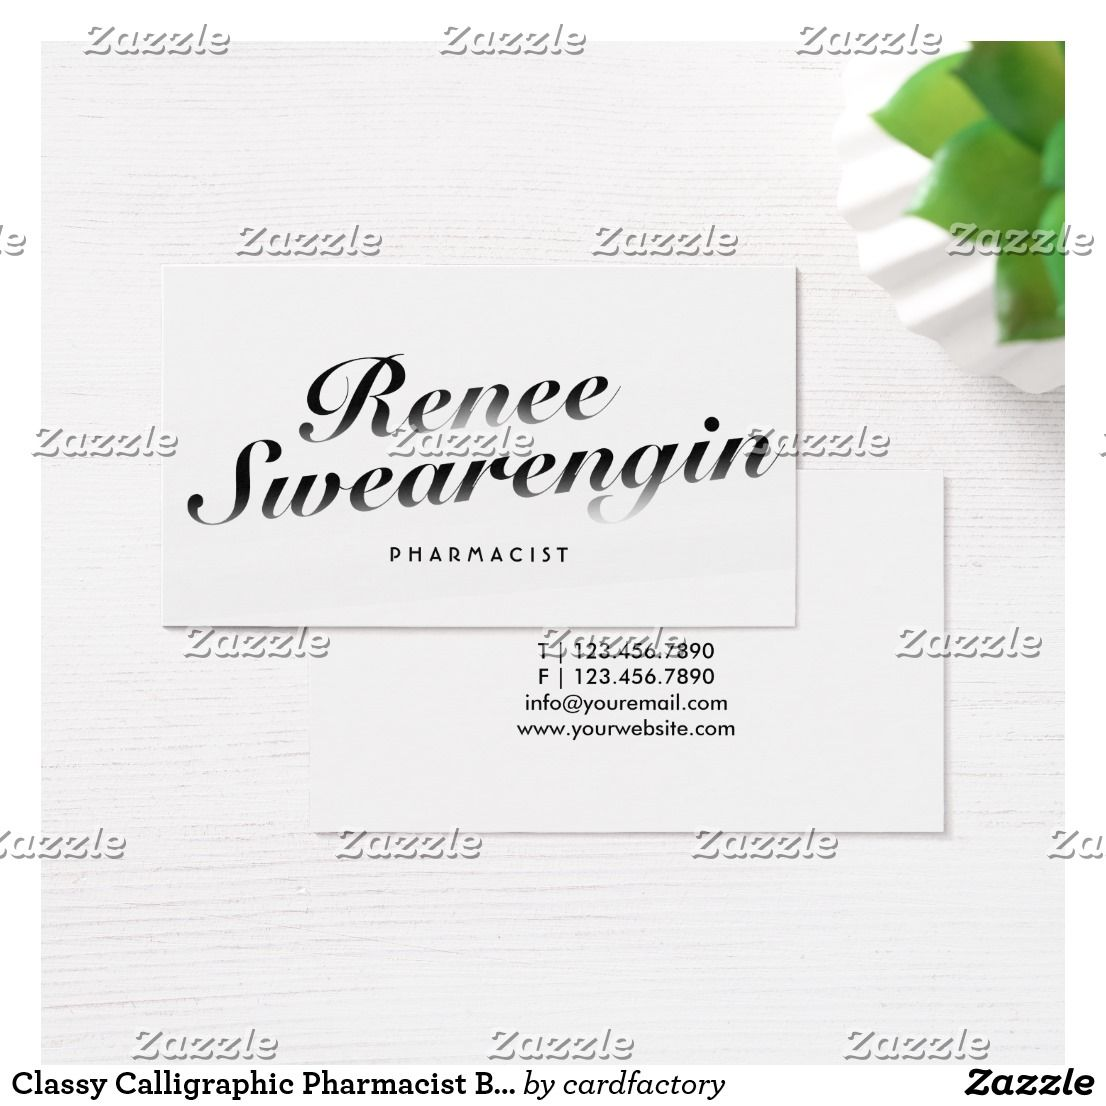 Classy Calligraphic Pharmacist Business Card | job | Pinterest ...